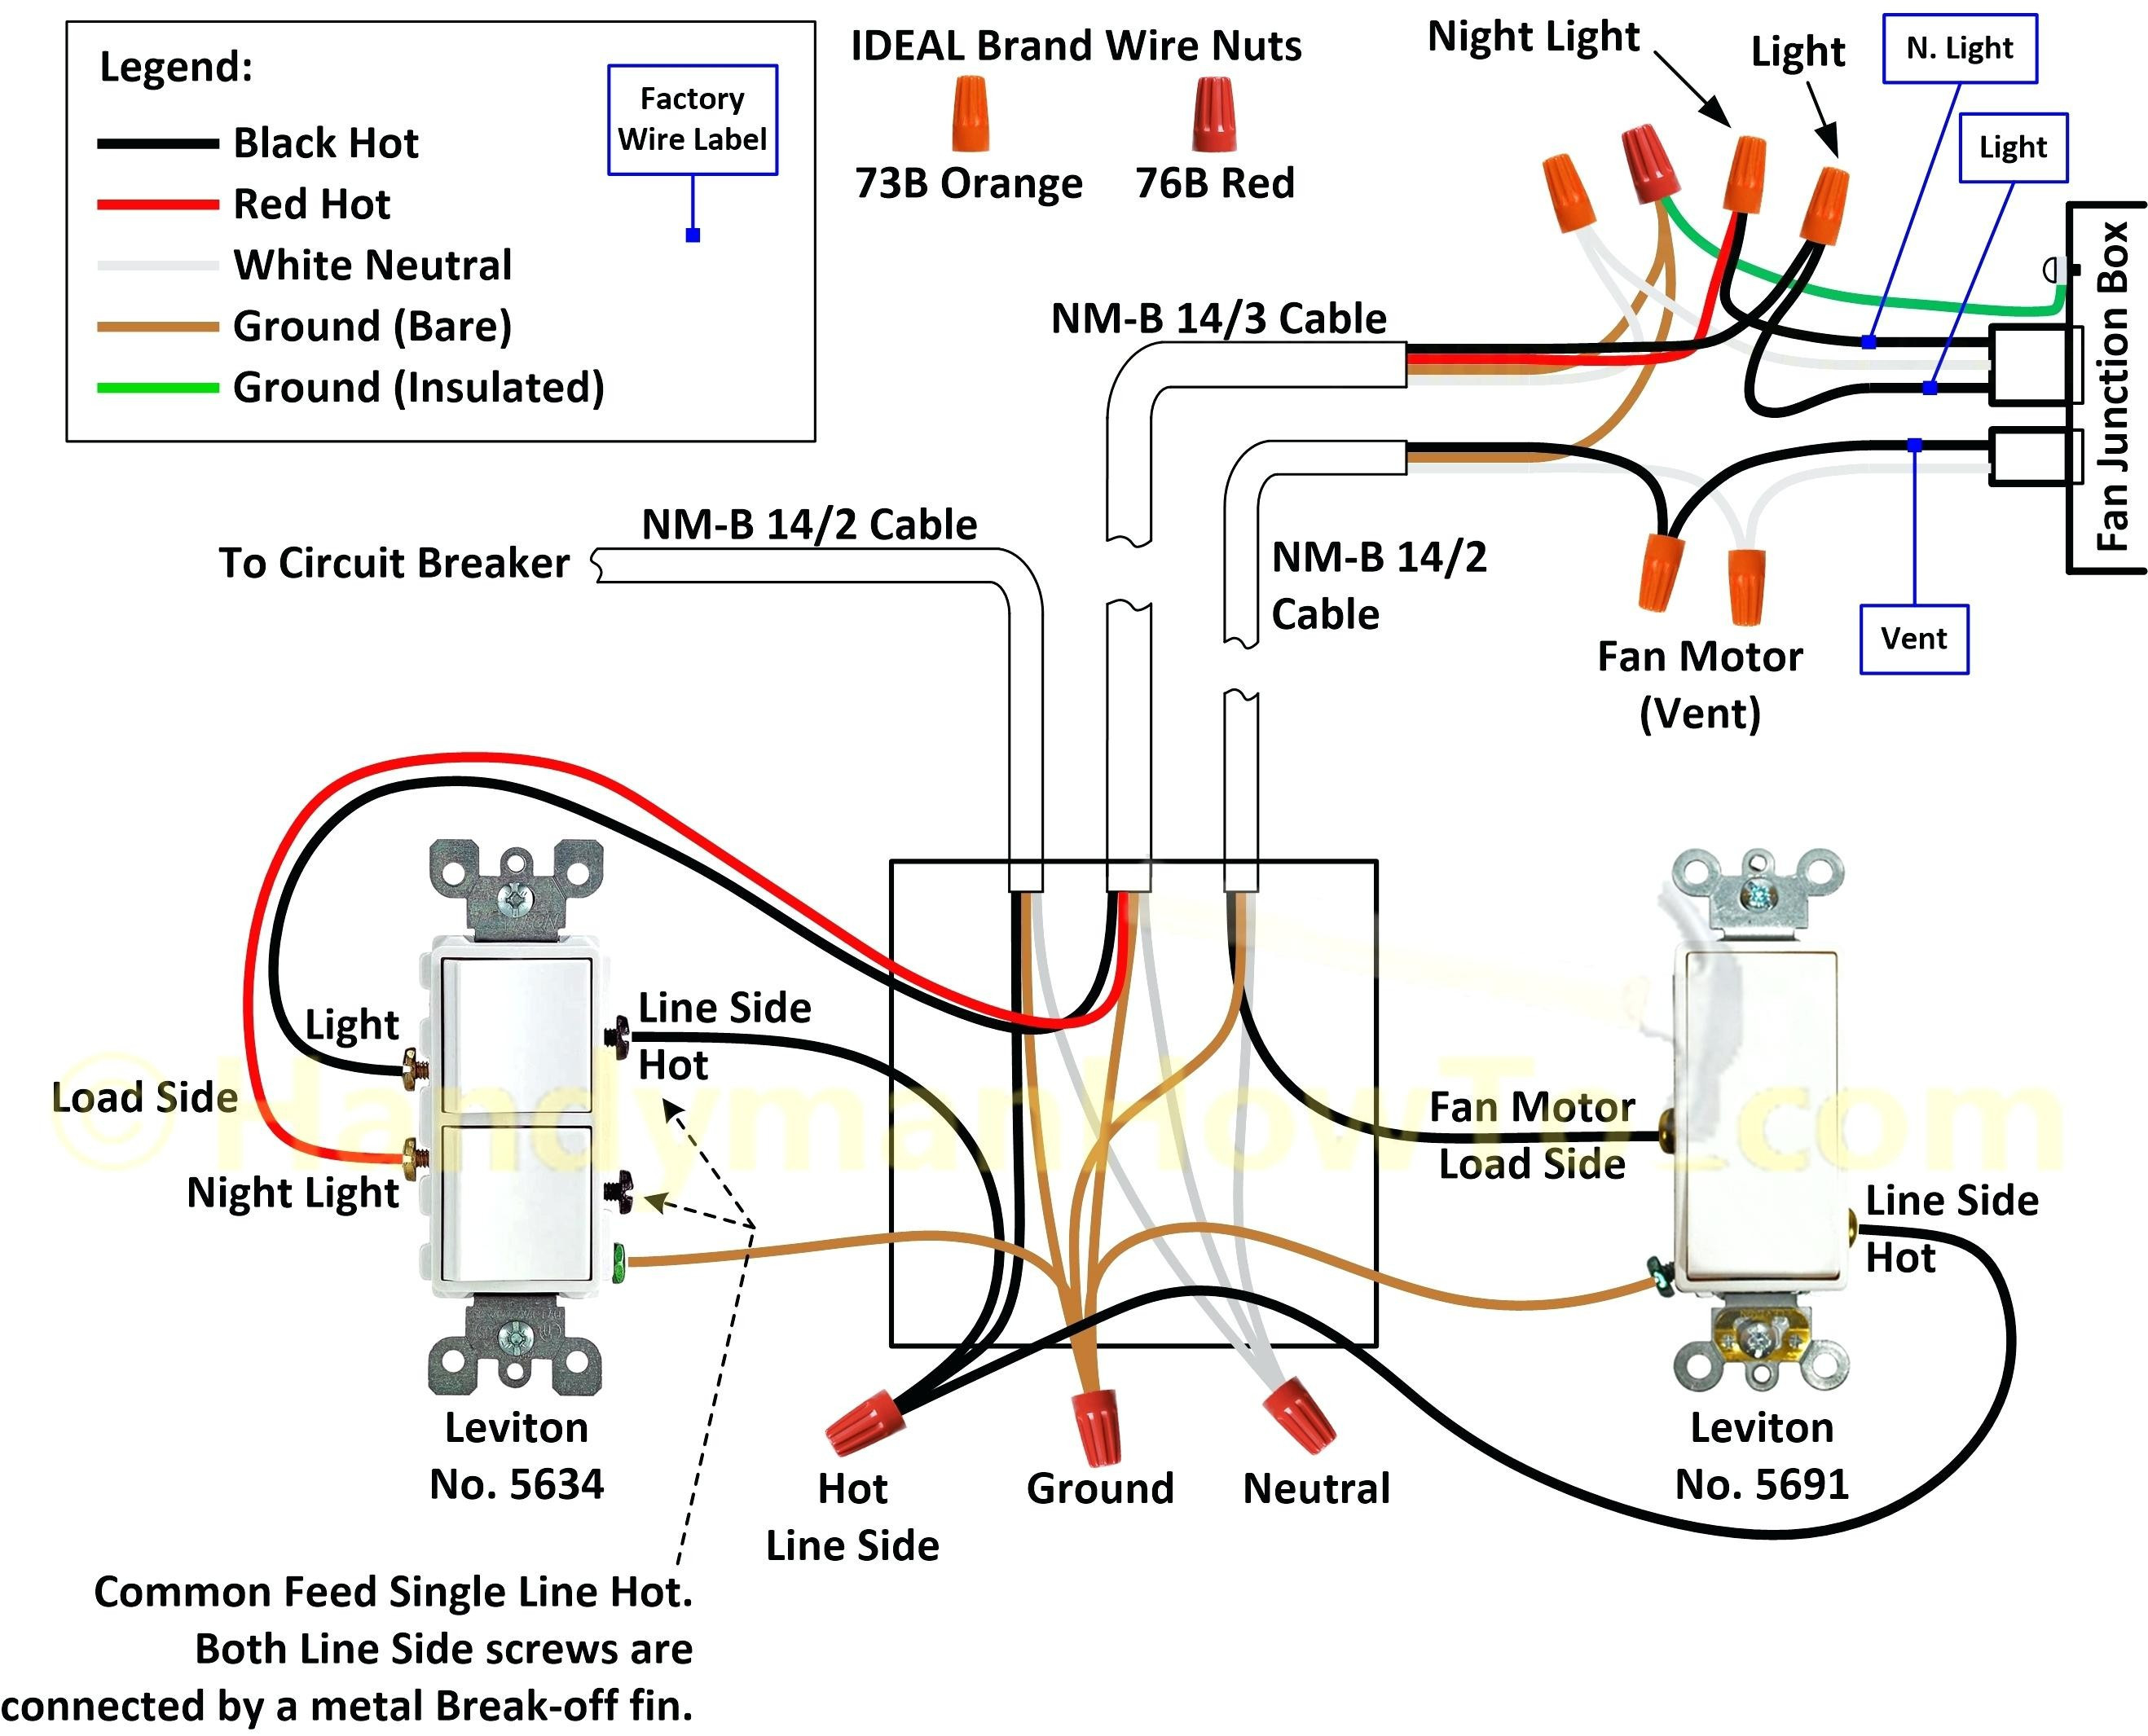 3 Way Switch Wiring Diagram With Dimmer Recent Wiring Diagram For - 3 Way Dimmer Switches Wiring Diagram